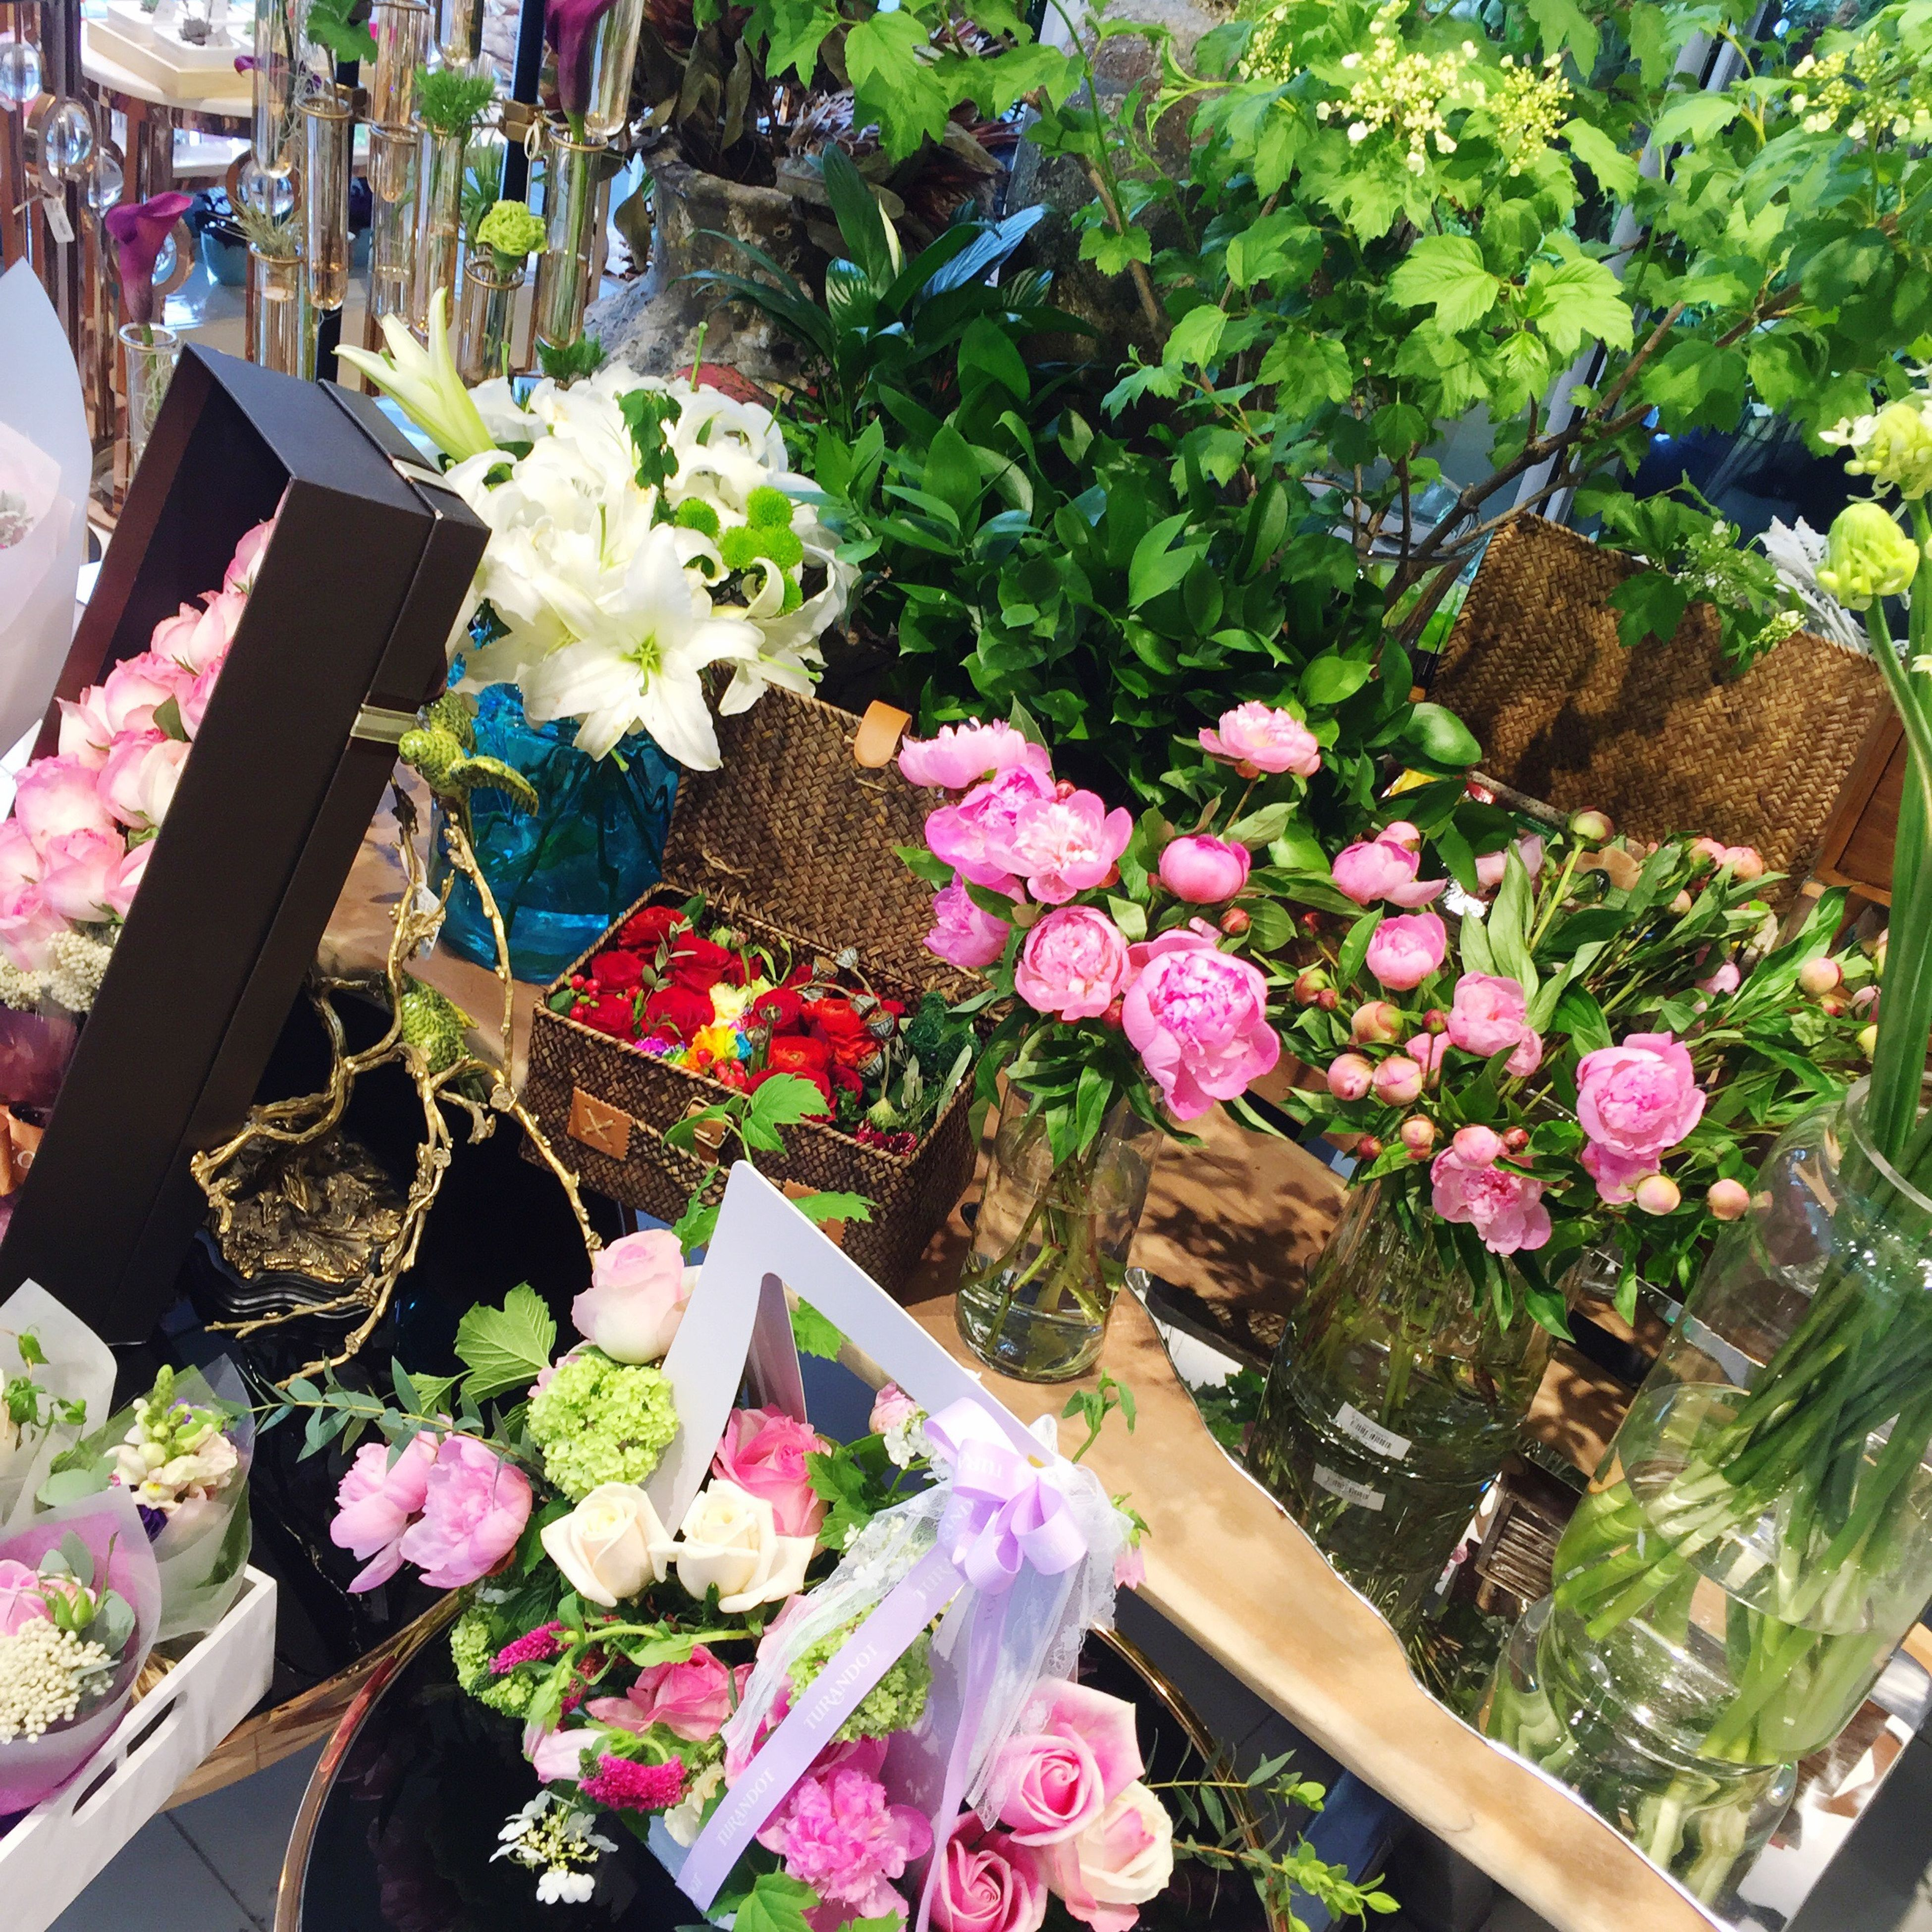 flower, freshness, growth, fragility, plant, potted plant, petal, variation, high angle view, beauty in nature, bouquet, bunch of flowers, leaf, nature, pink color, for sale, flower pot, abundance, blooming, no people